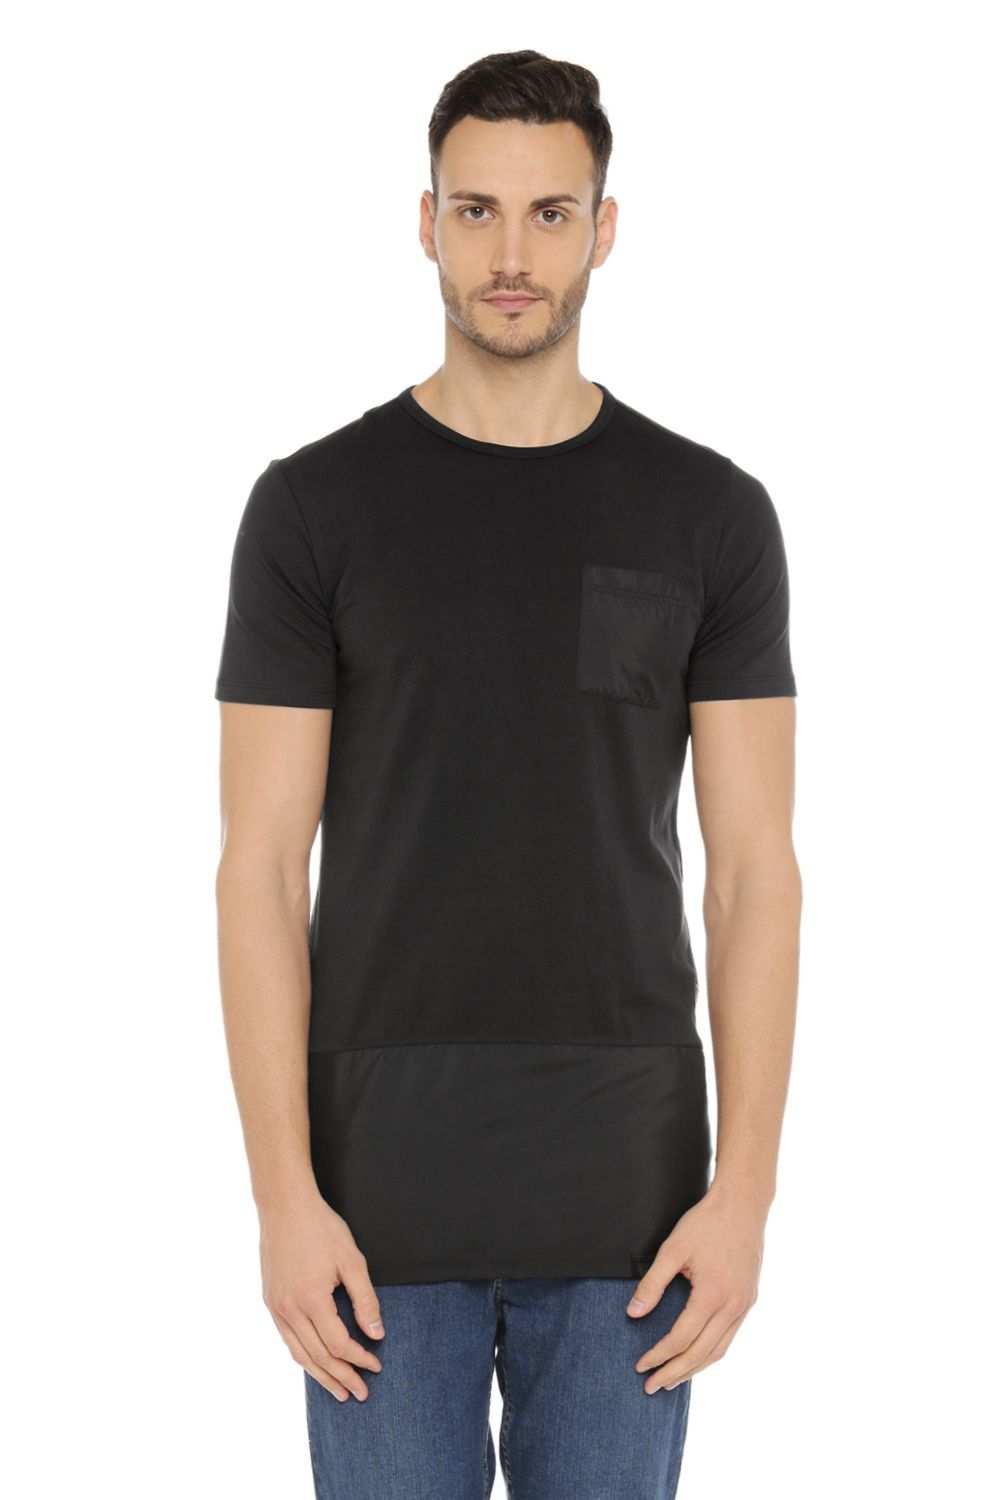 4ee663e13 Buy T Shirts for Men Online with Best Price in India